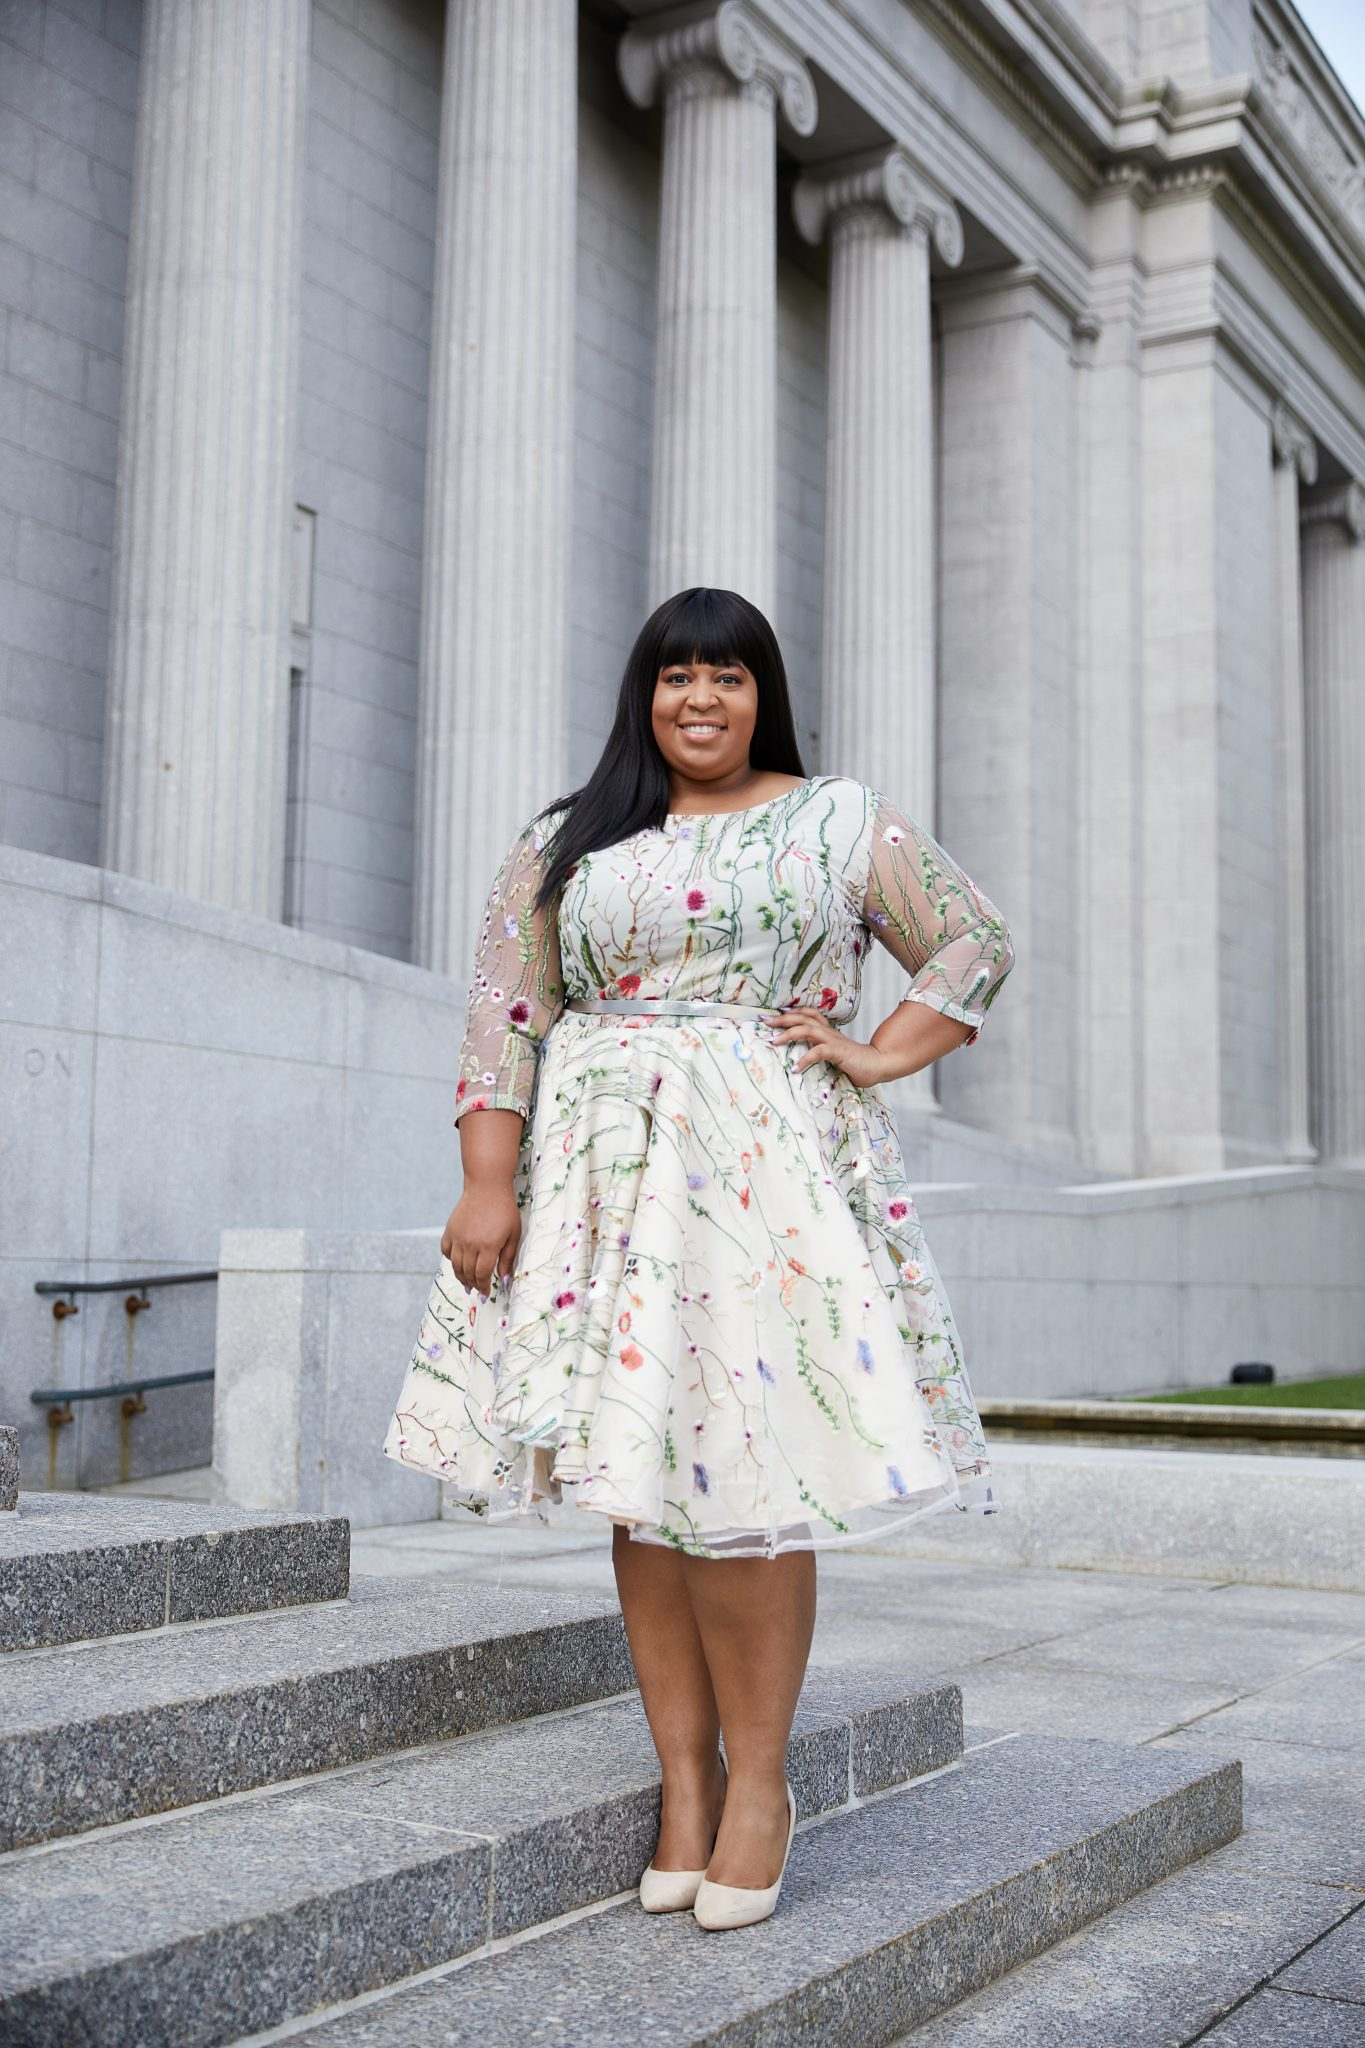 Naturally Nude by Eleven 60 Plus Size Blogger